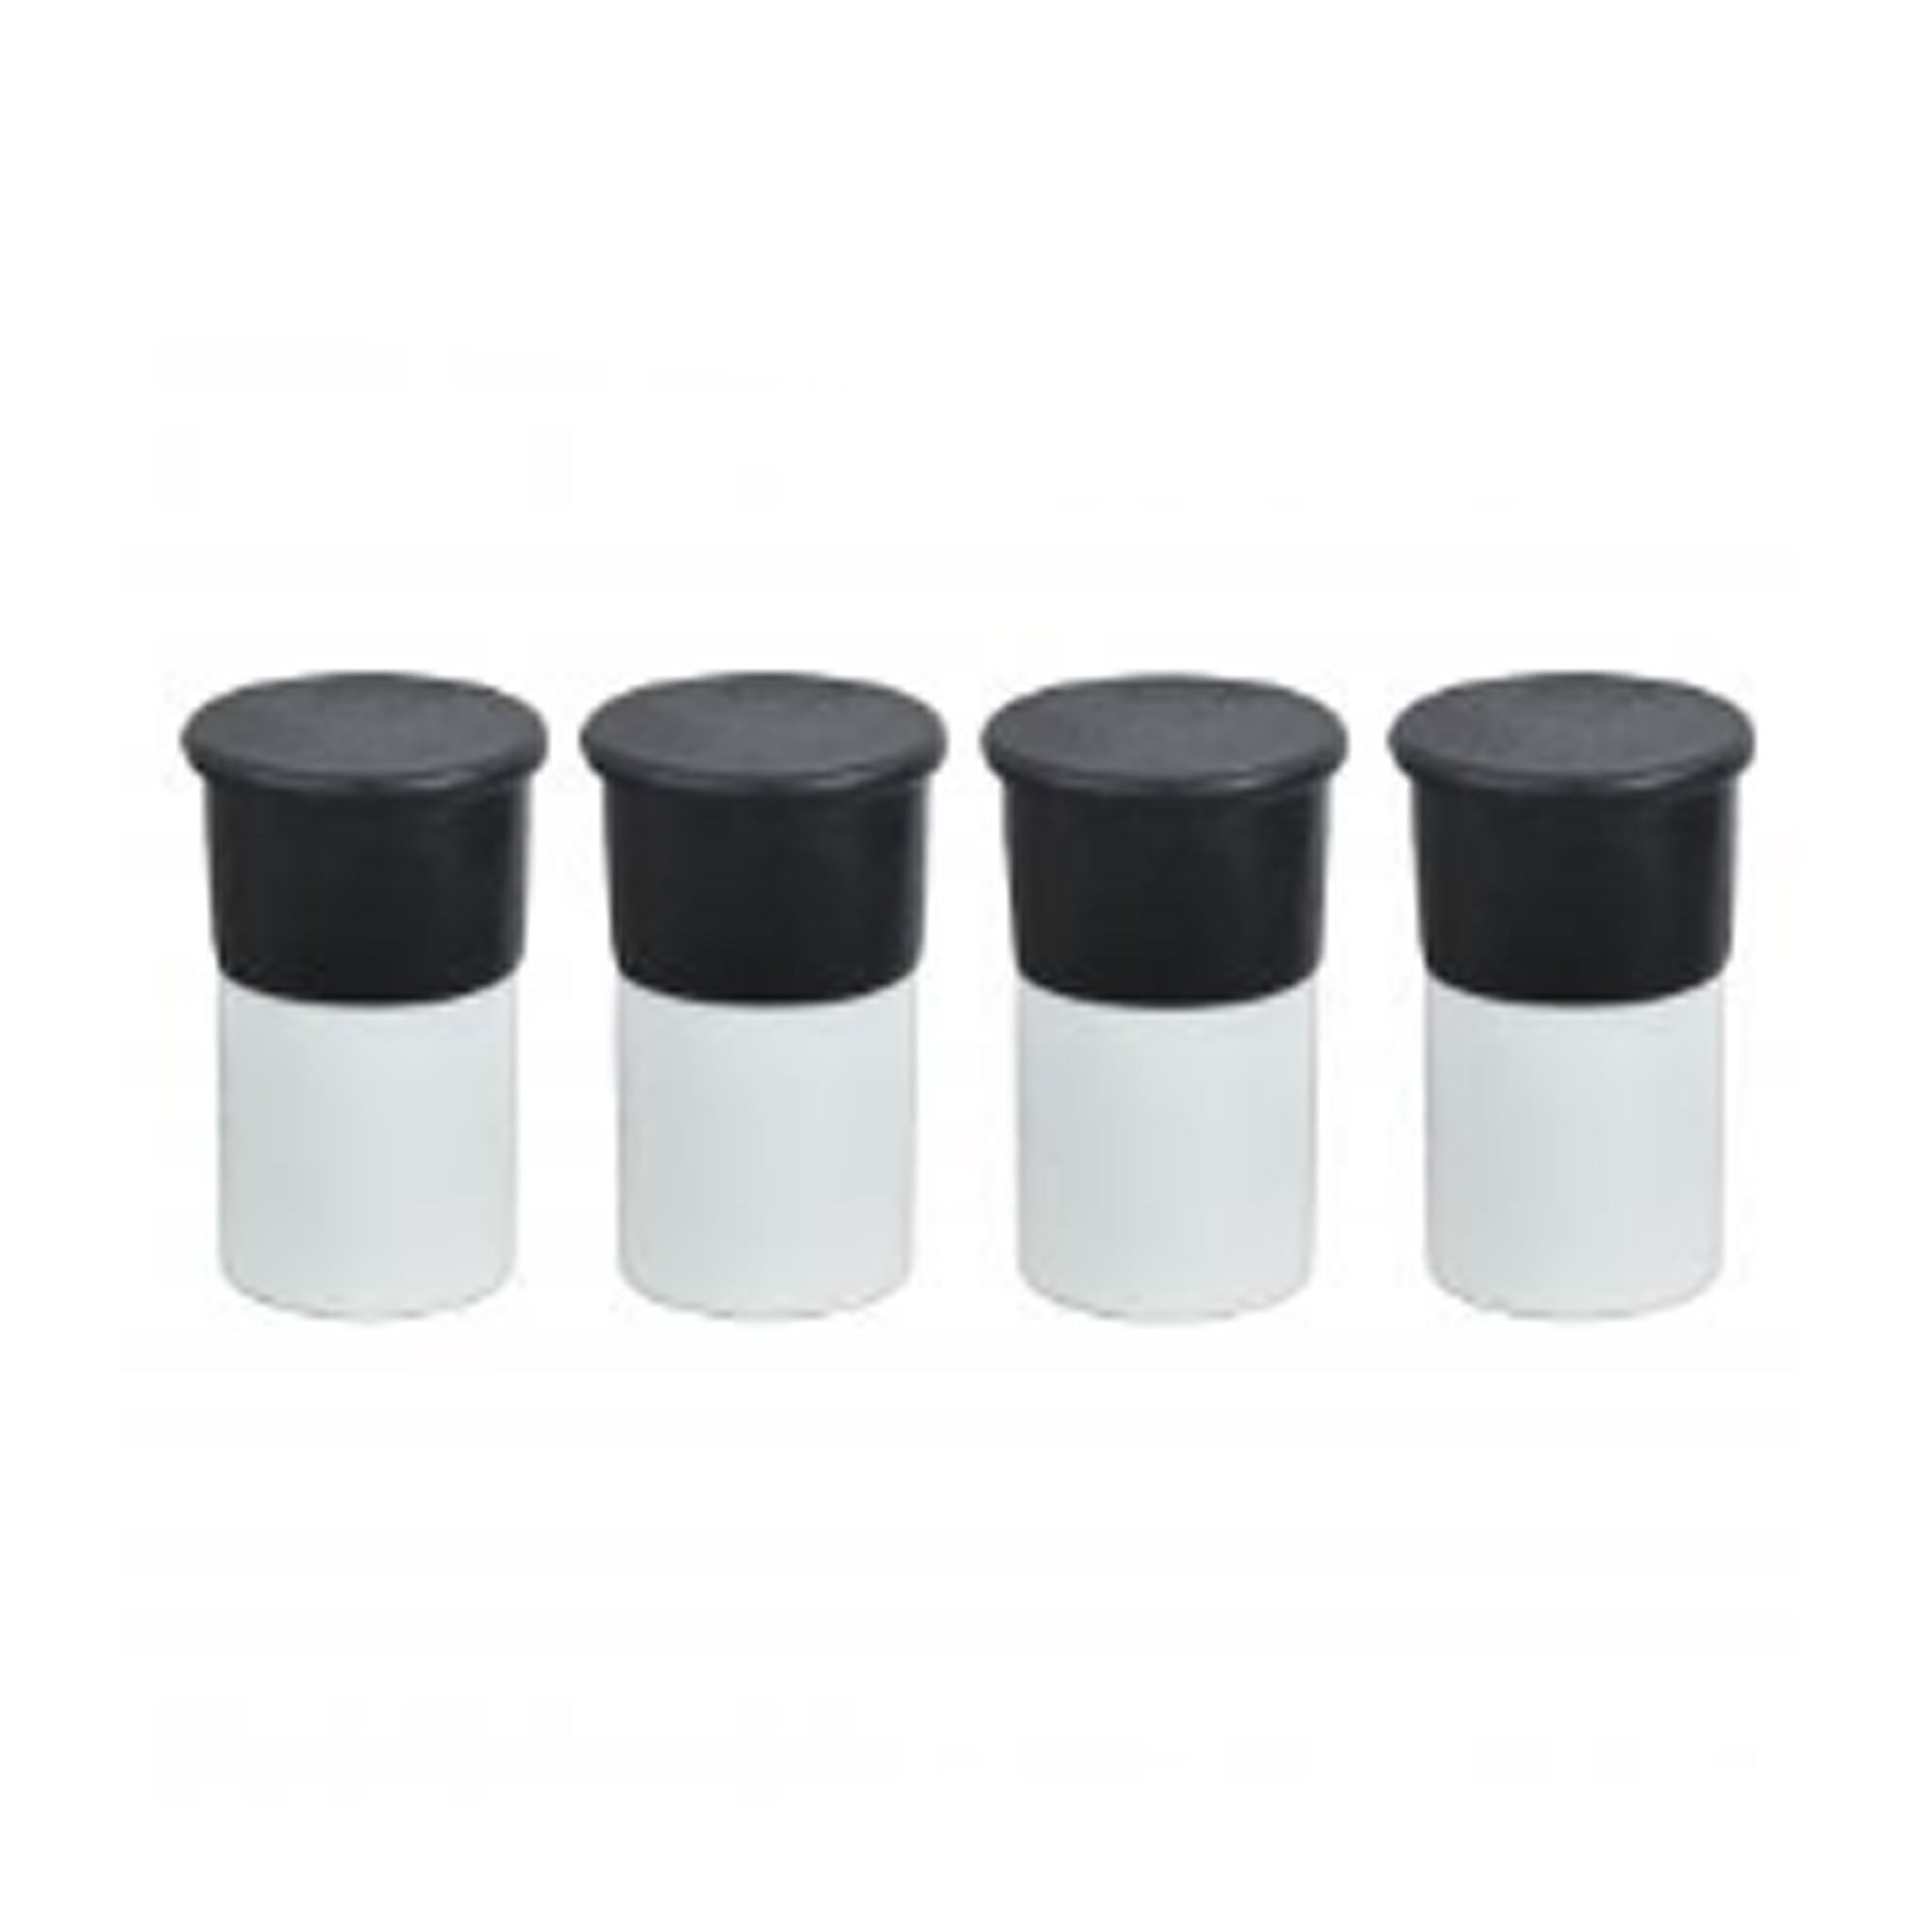 Wheatgrass Grower Black Feet (4-Piece Set)